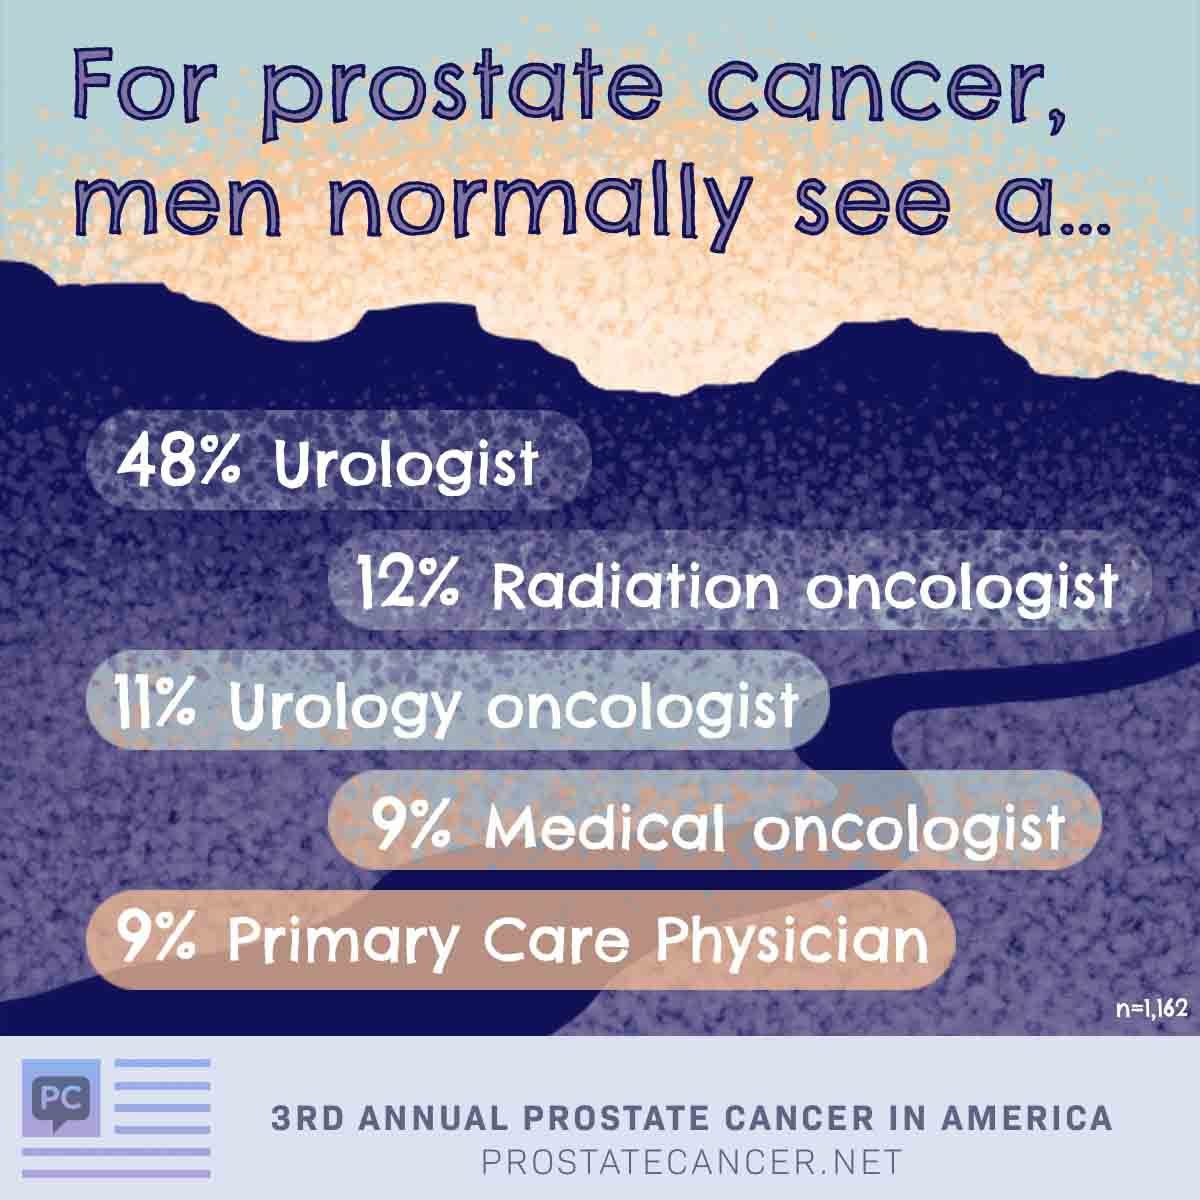 For prostate cancer, men normally see a urologist 48%, radiation oncologist 12%, urology oncologist 11%, medical oncologist 9%, primary care physician 9%